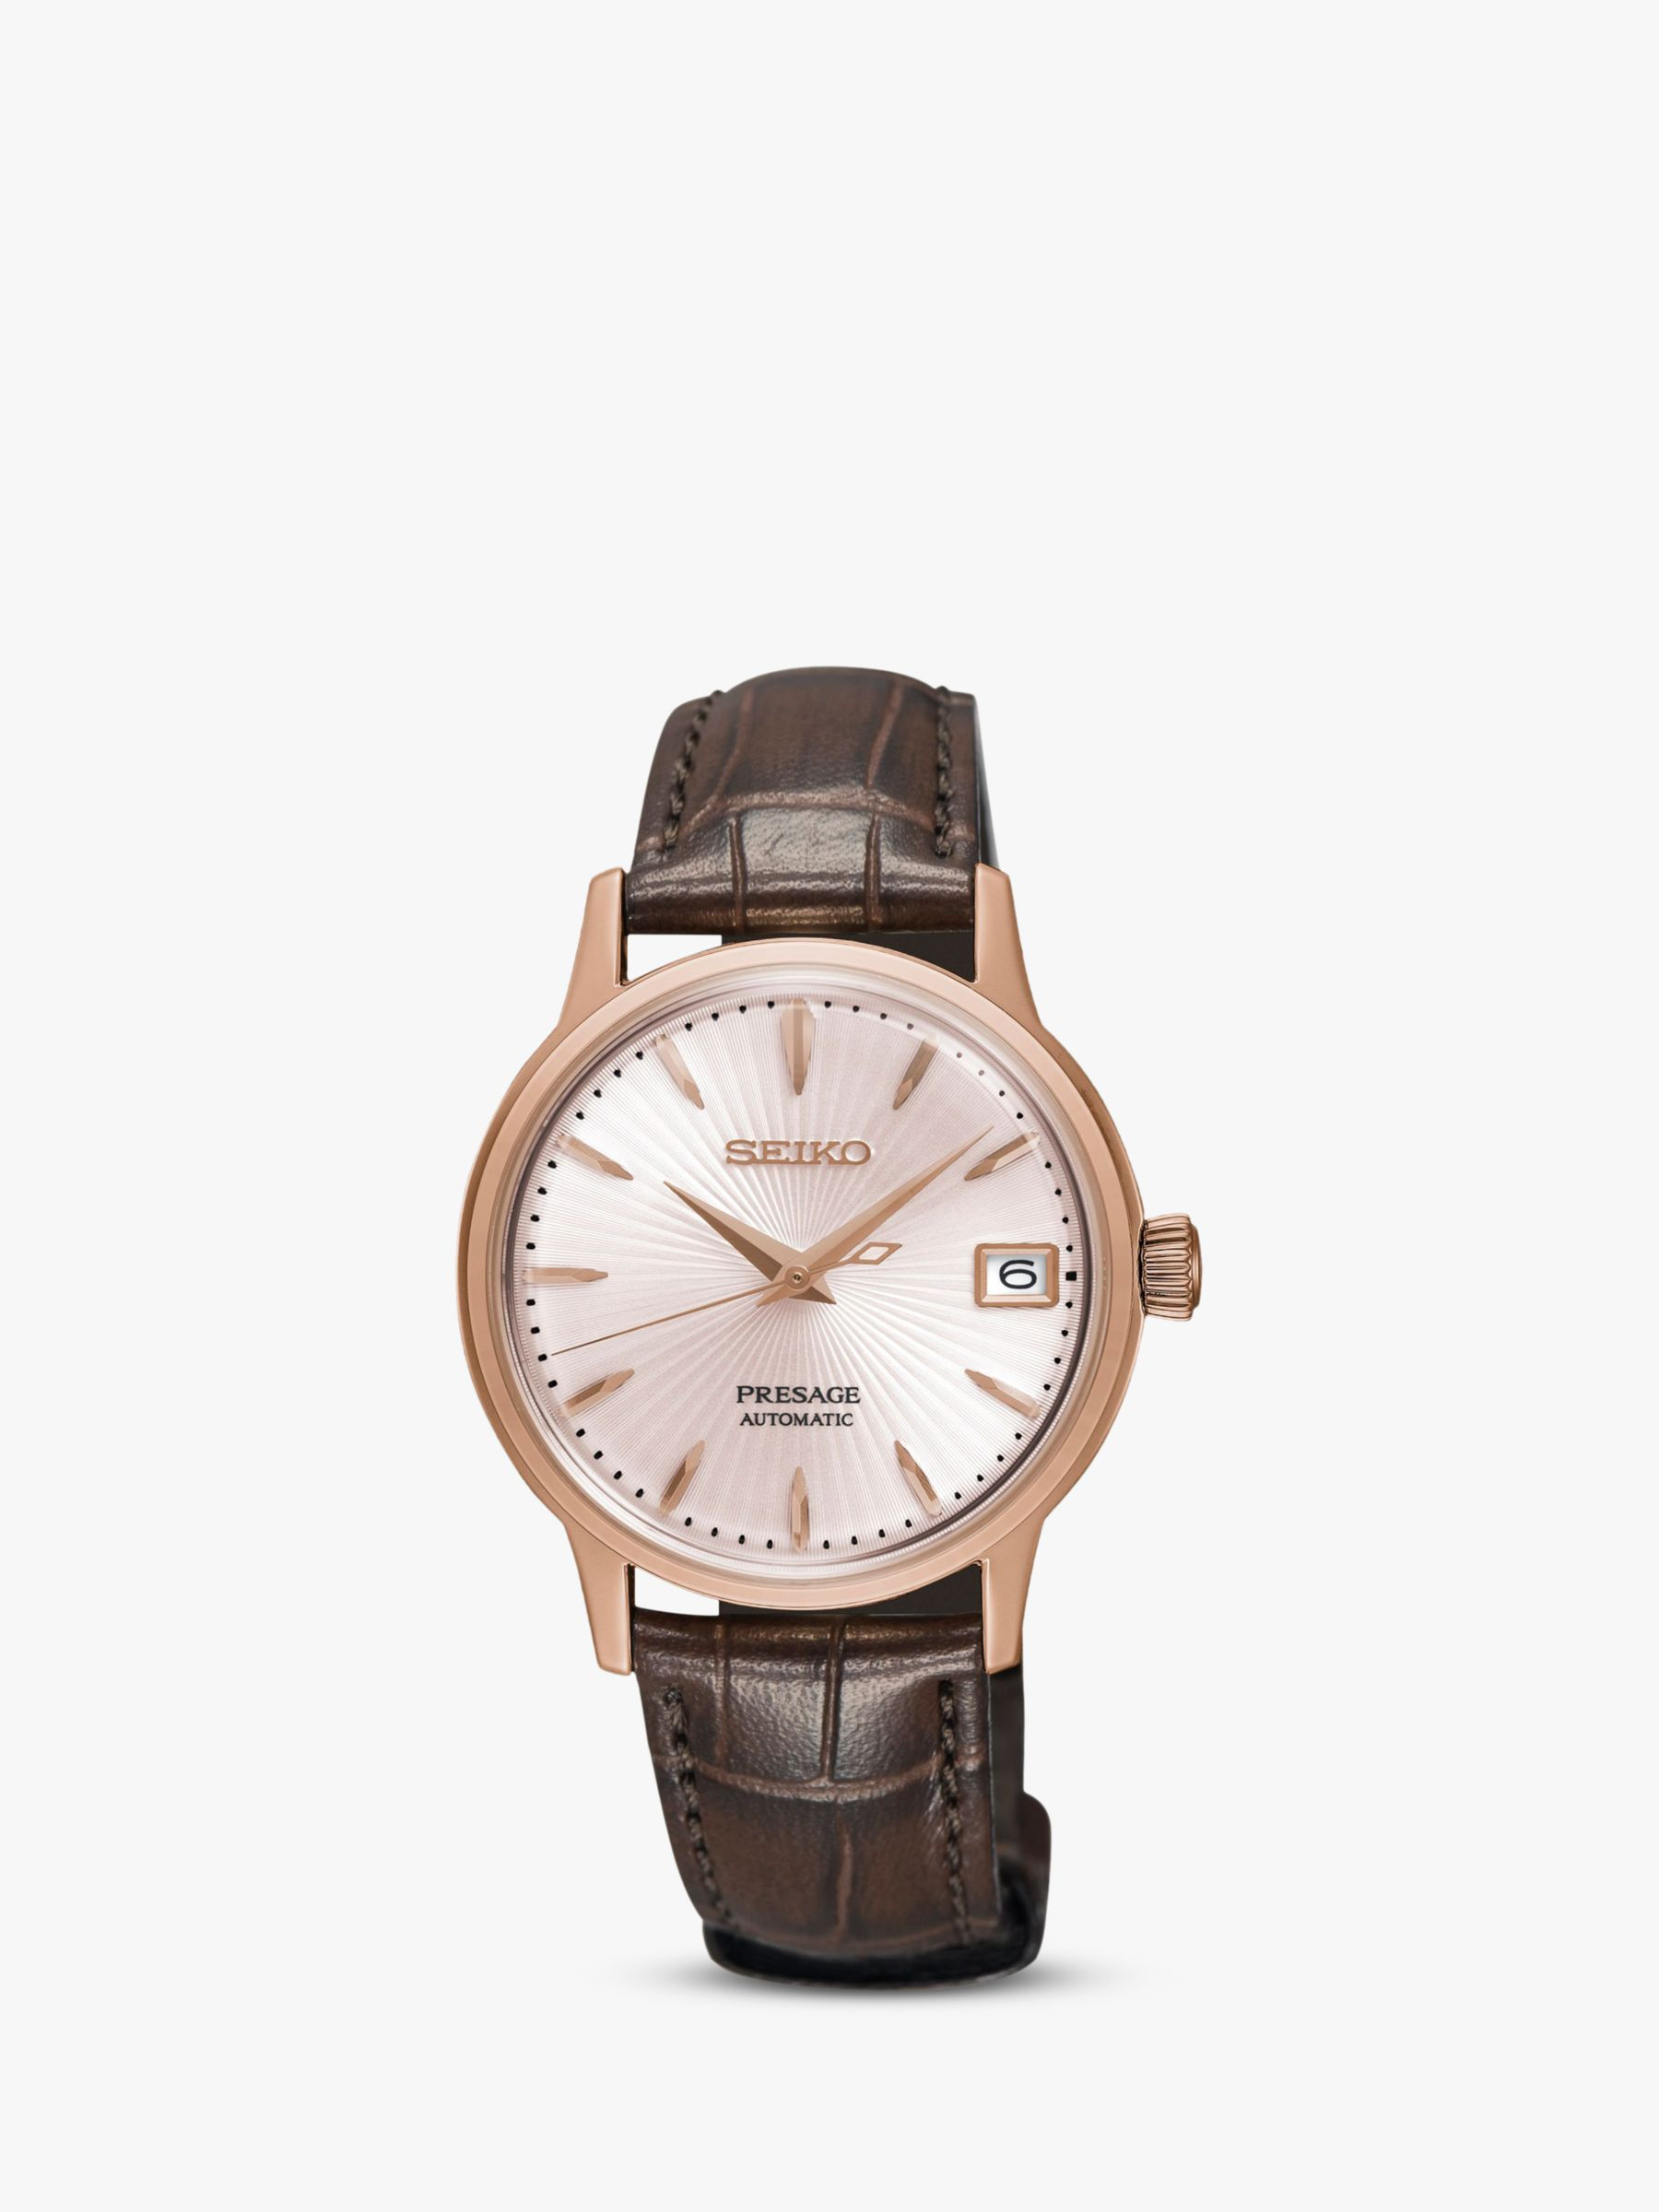 Leather Strap Rose Gold Watch Seiko Srp852j1 Women S Presage Automatic Date Leather Strap Watch Brown Rose Gold